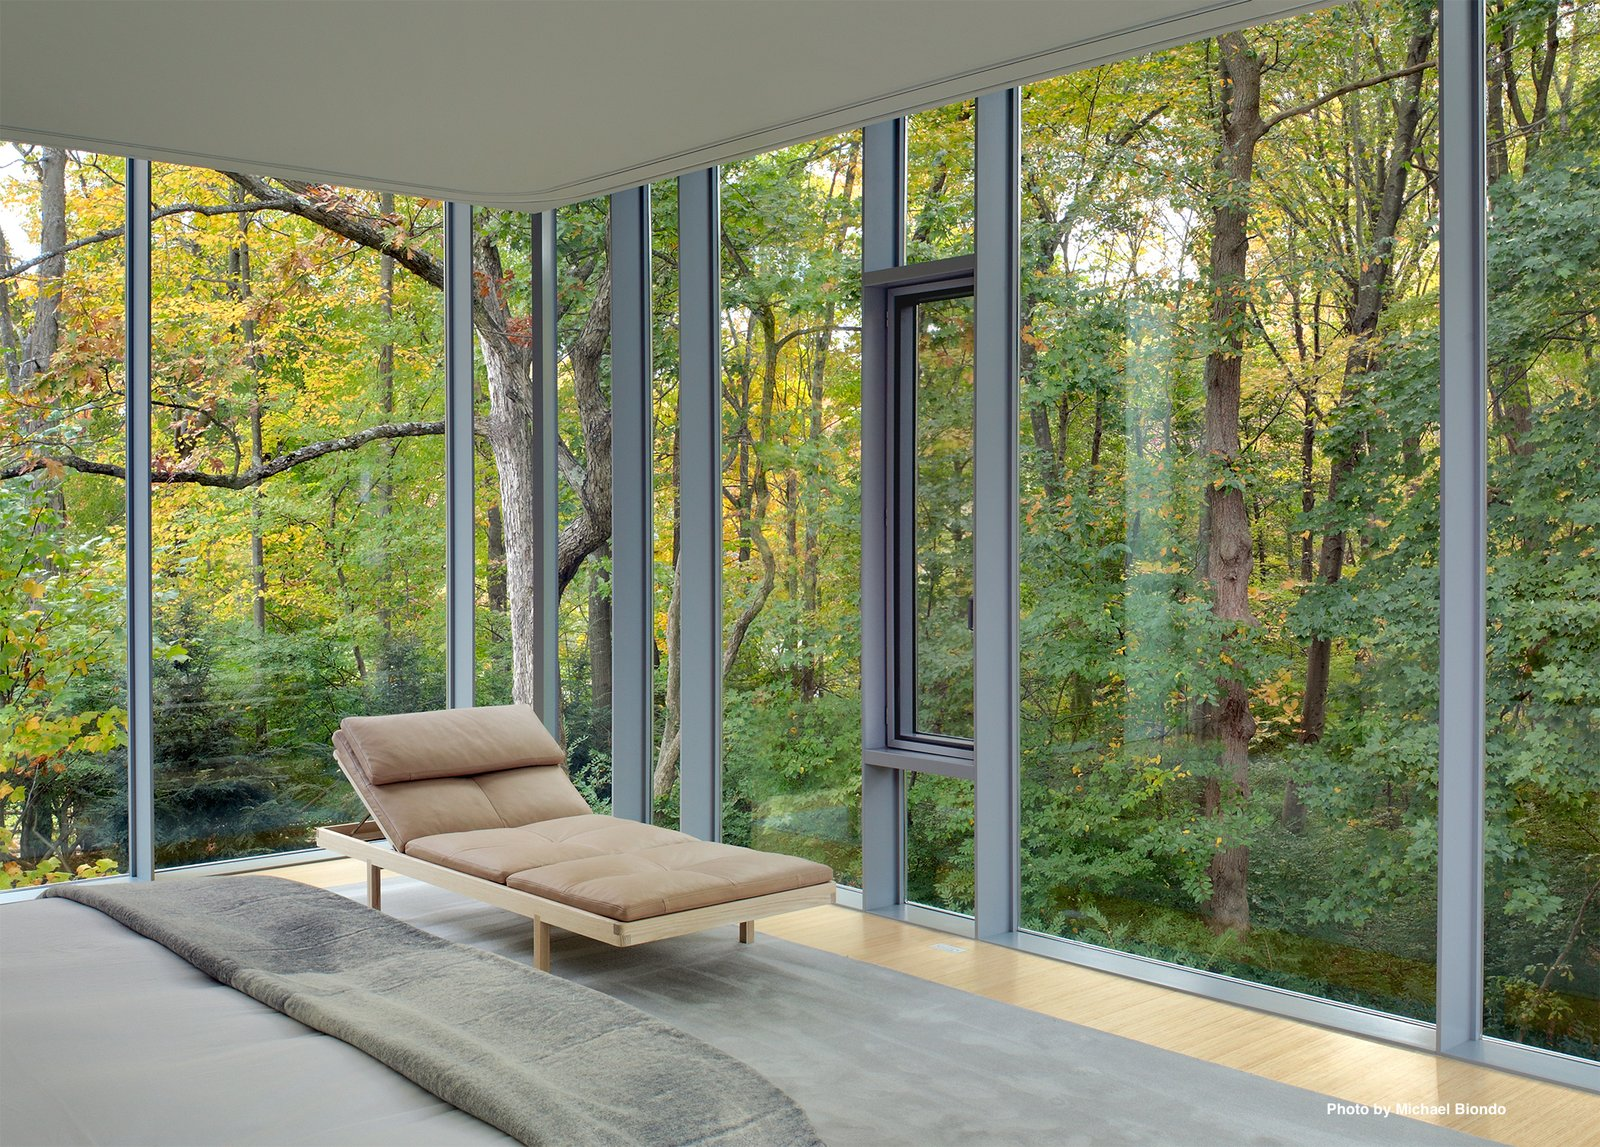 In the master bedroom, Mori custom built a beveled edge bed with side drawers and lined with the windows with automatic curtains, both blackout and sheer.